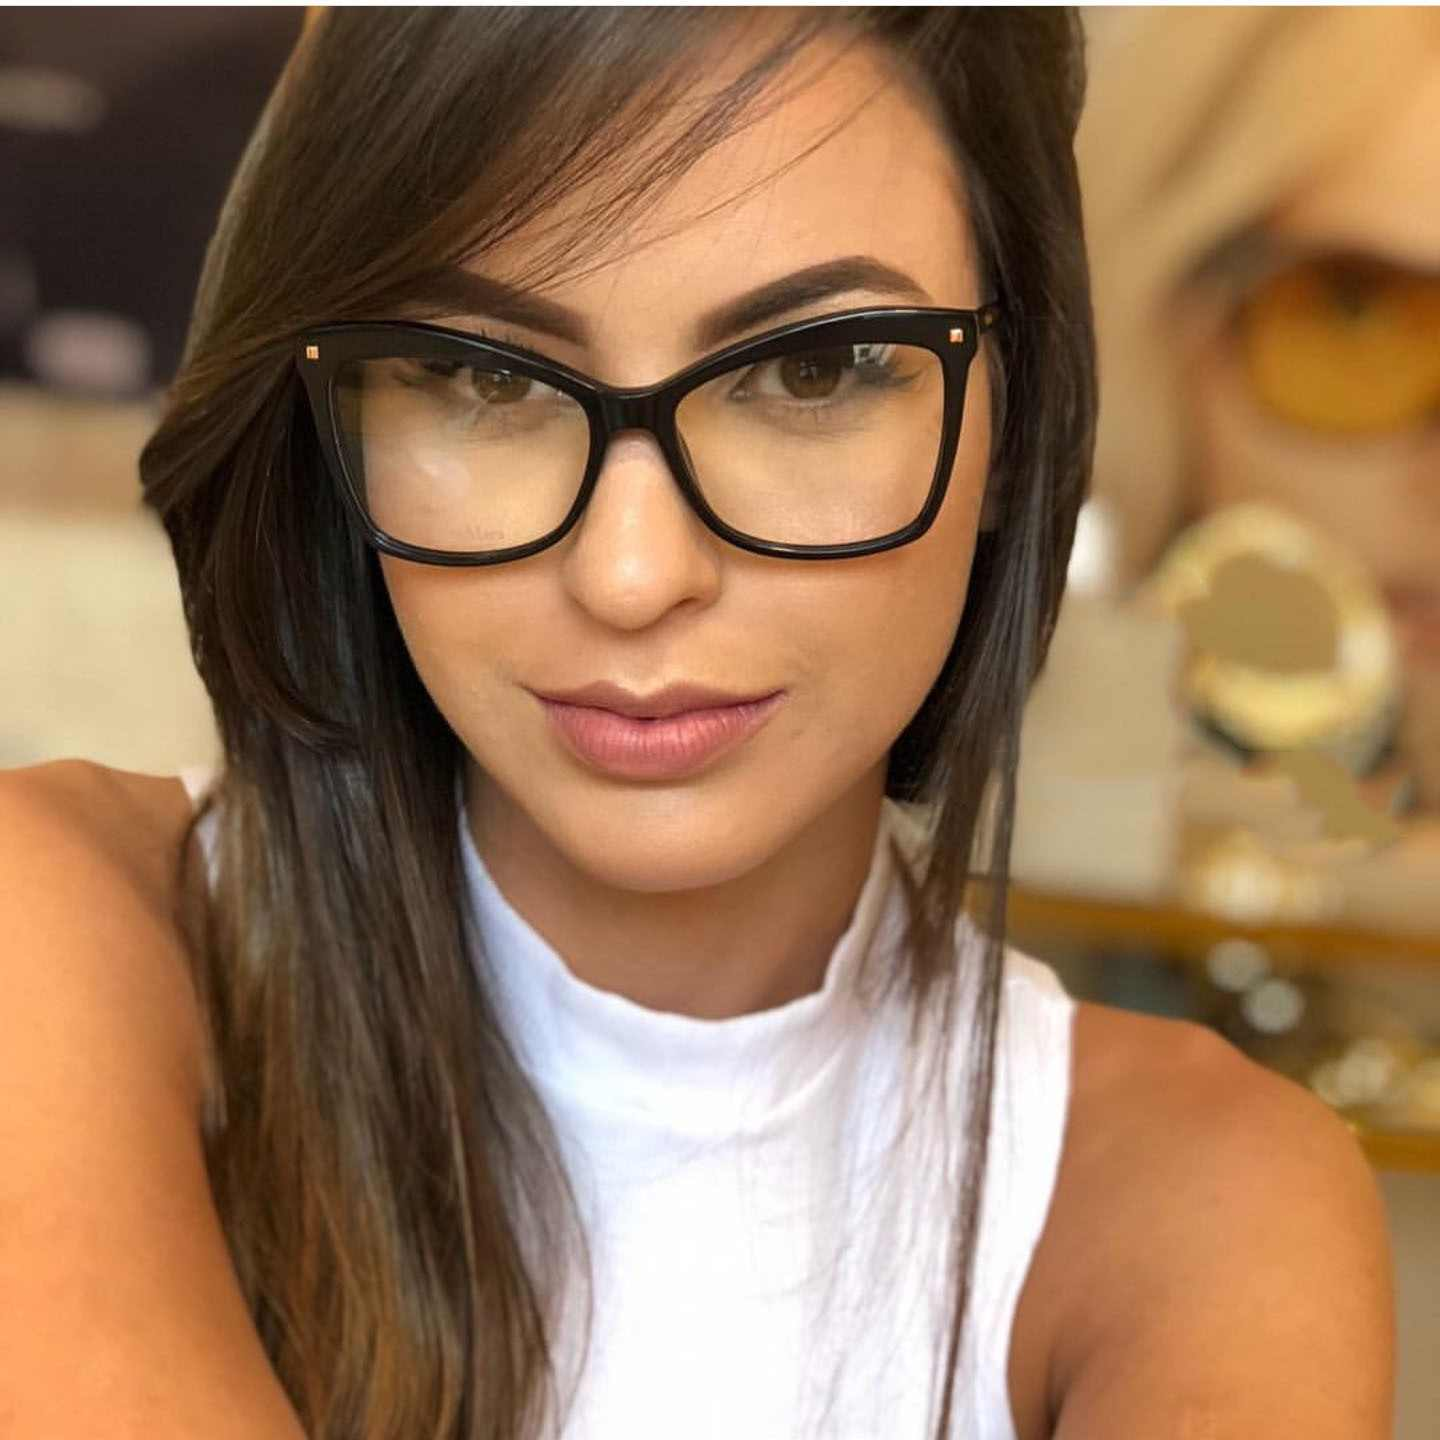 cc66b48cbc49a Detail Feedback Questions about Cubojue Fashion Women Glasses Large Square Eyeglasses  Frames for Woman Prescription Optical Myopia Diopter Eyeglass Female ...